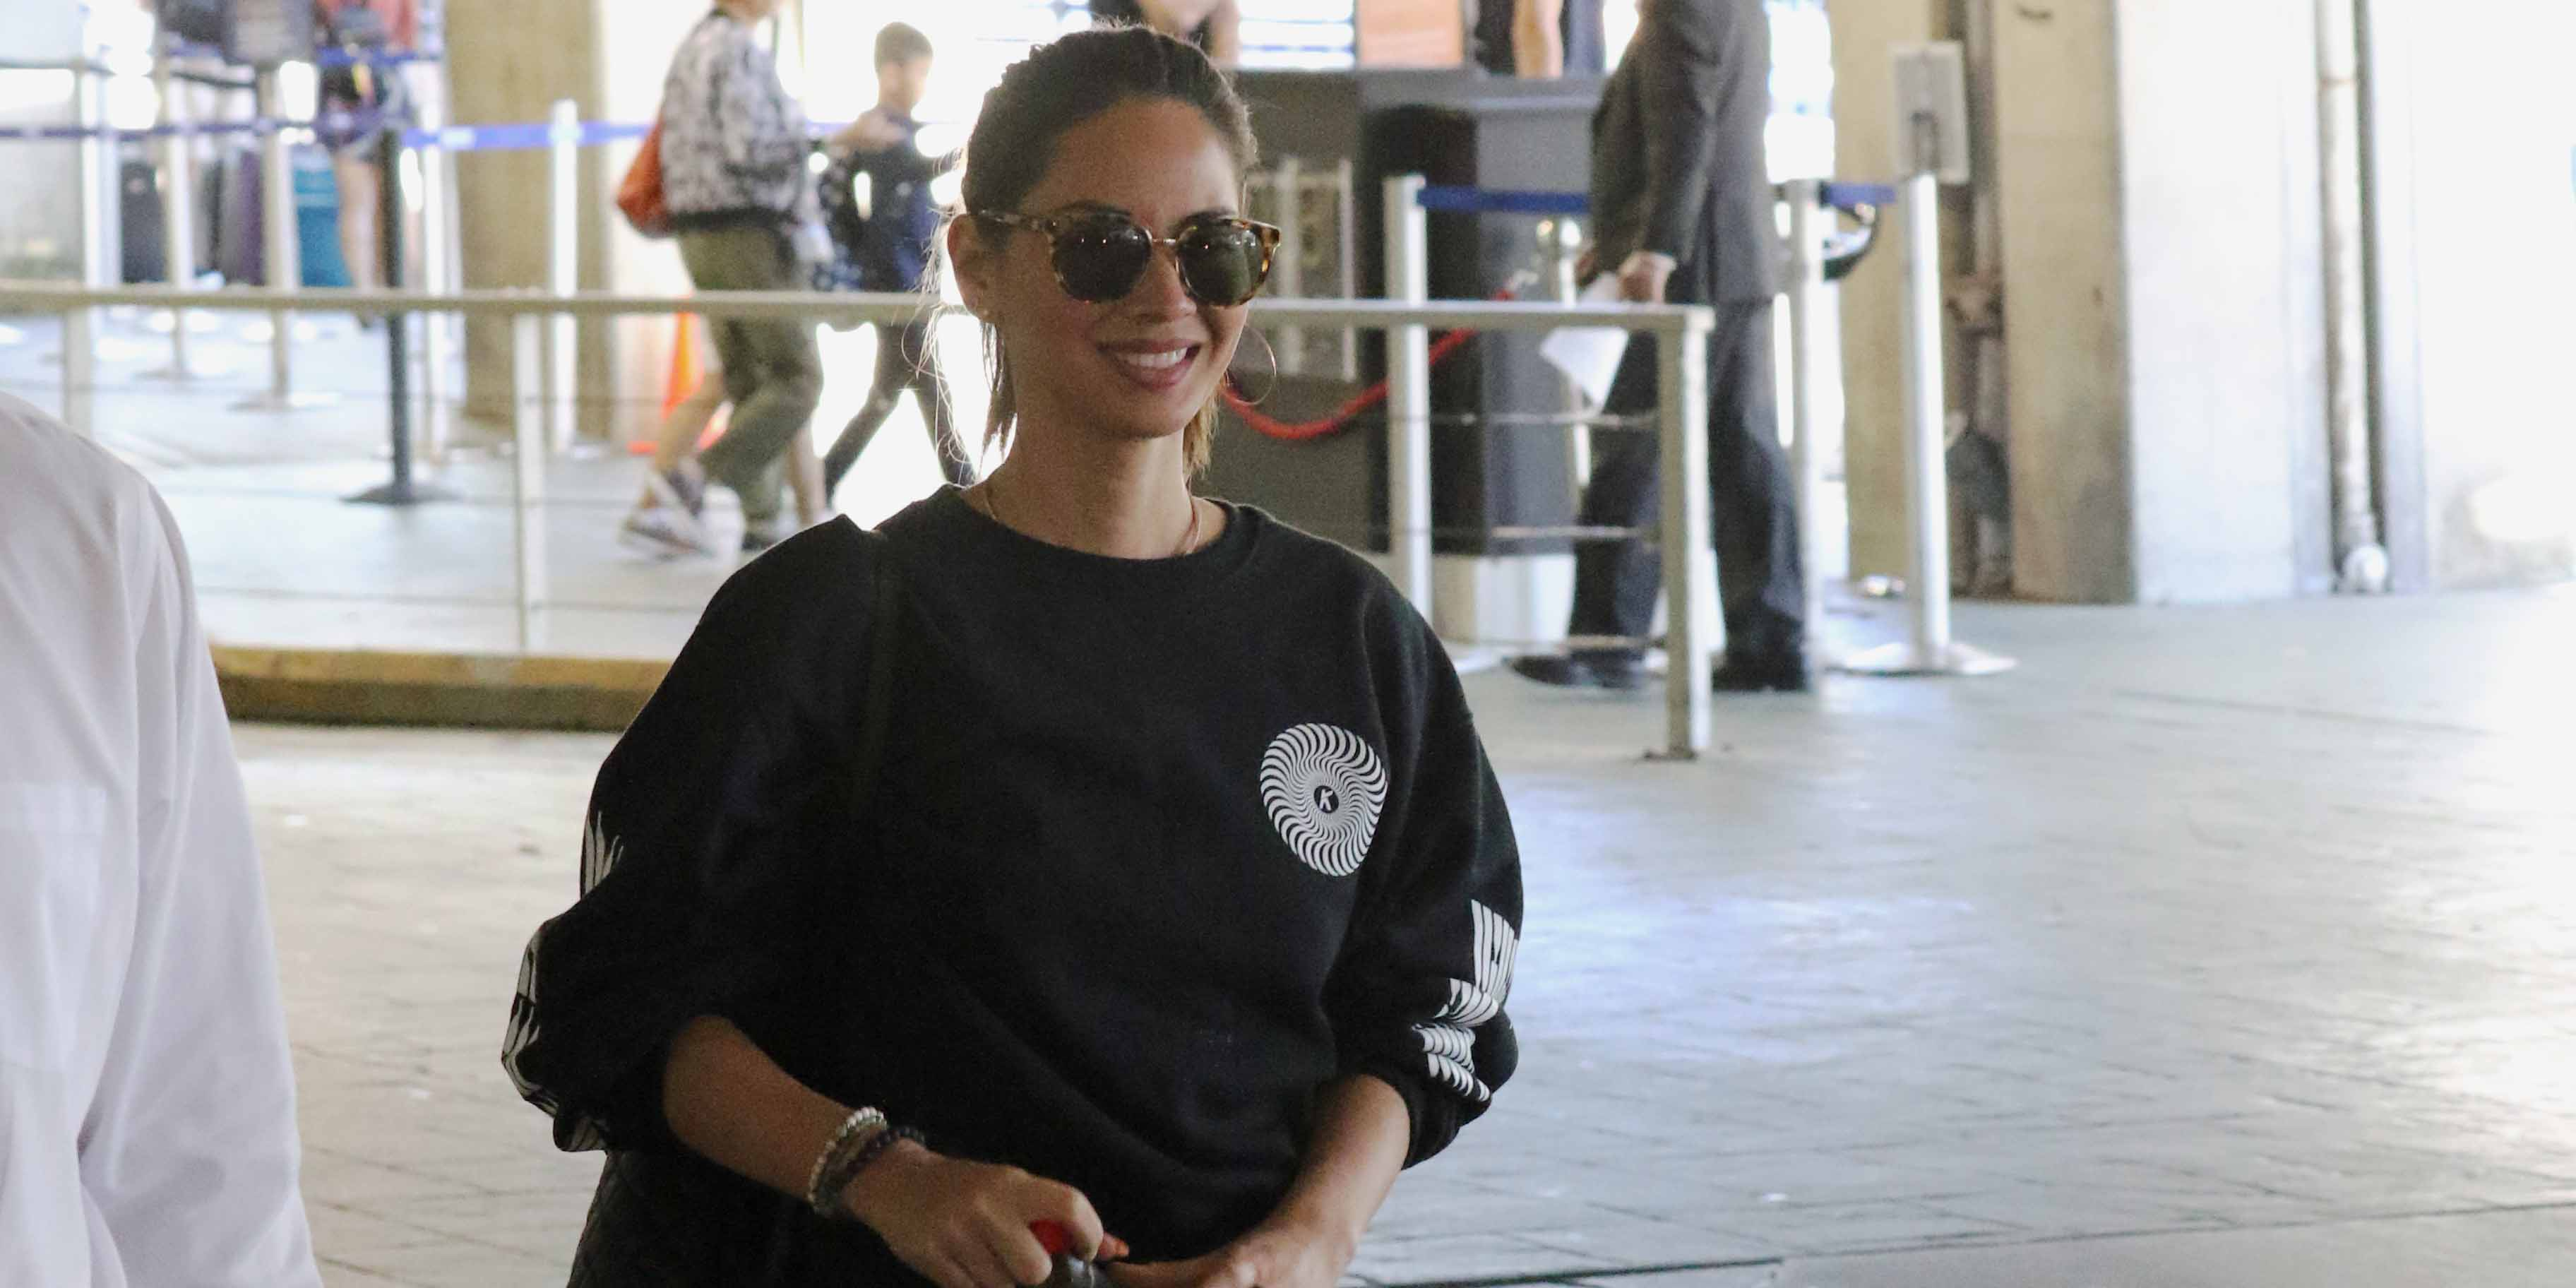 Olivia Munn arrives in Vancouver to film 'Six' (PHOTOS)